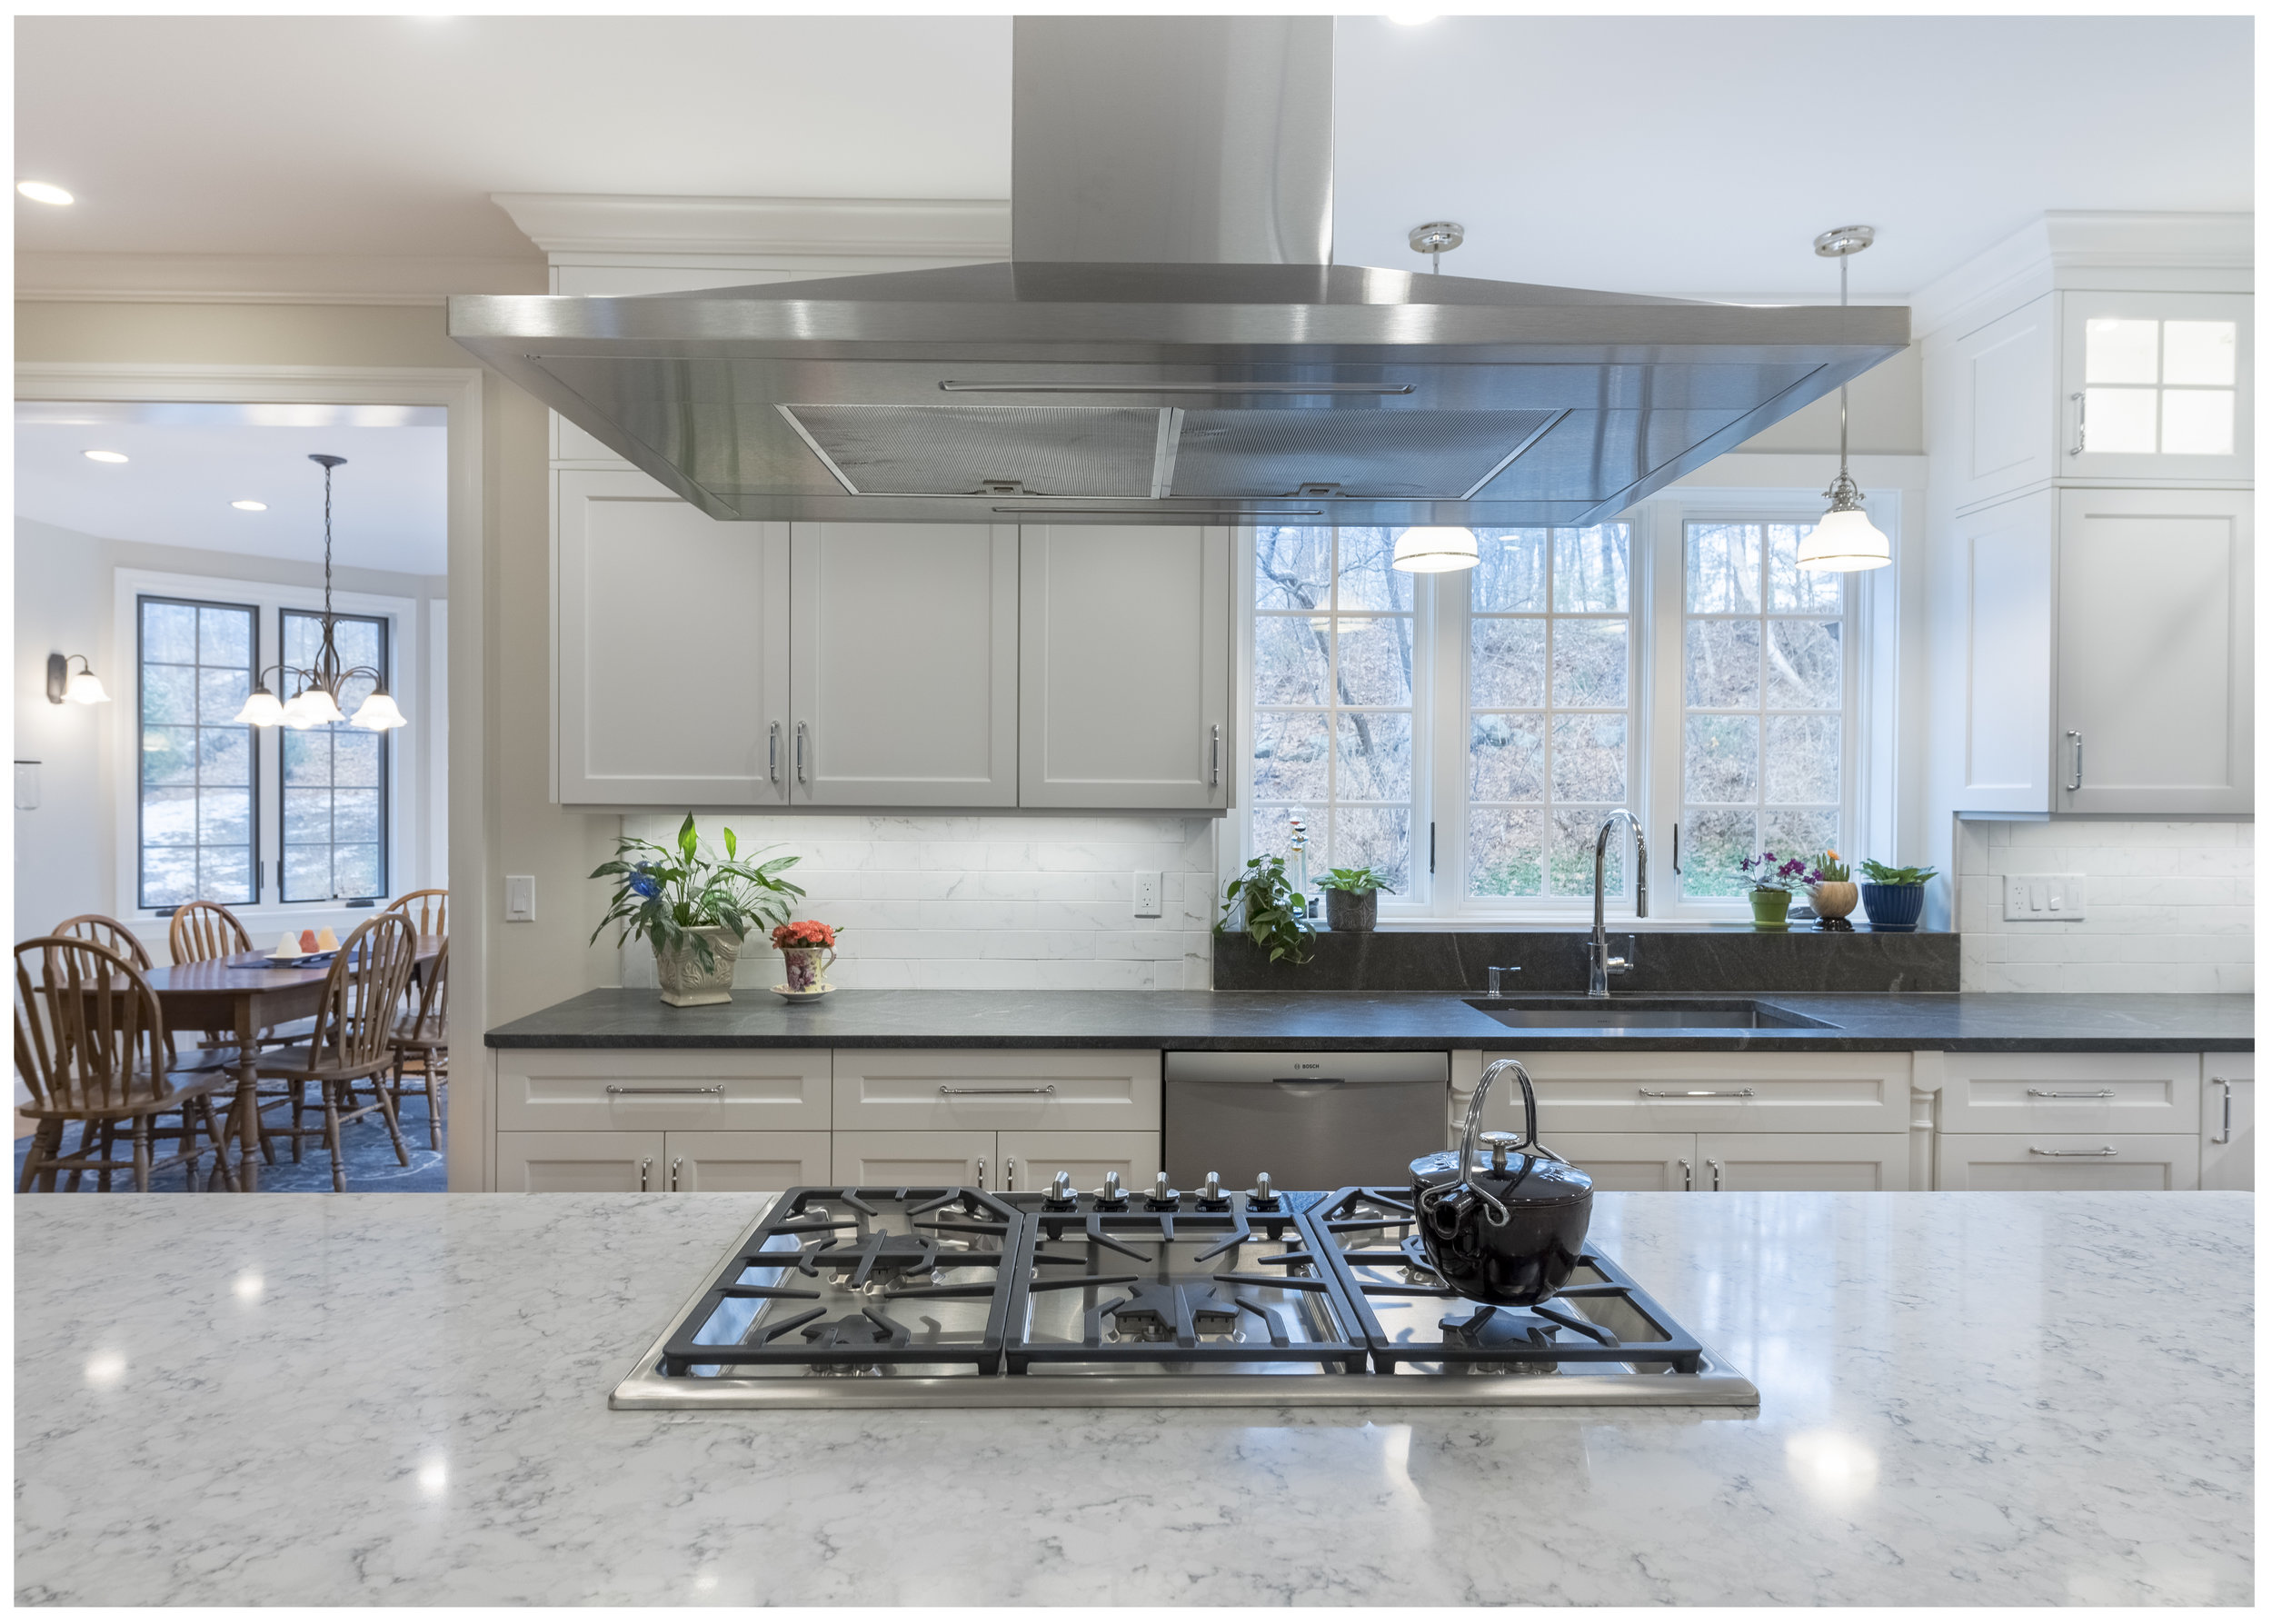 KitchenVisions-Transitional-Kitchen-Acton-009.jpg